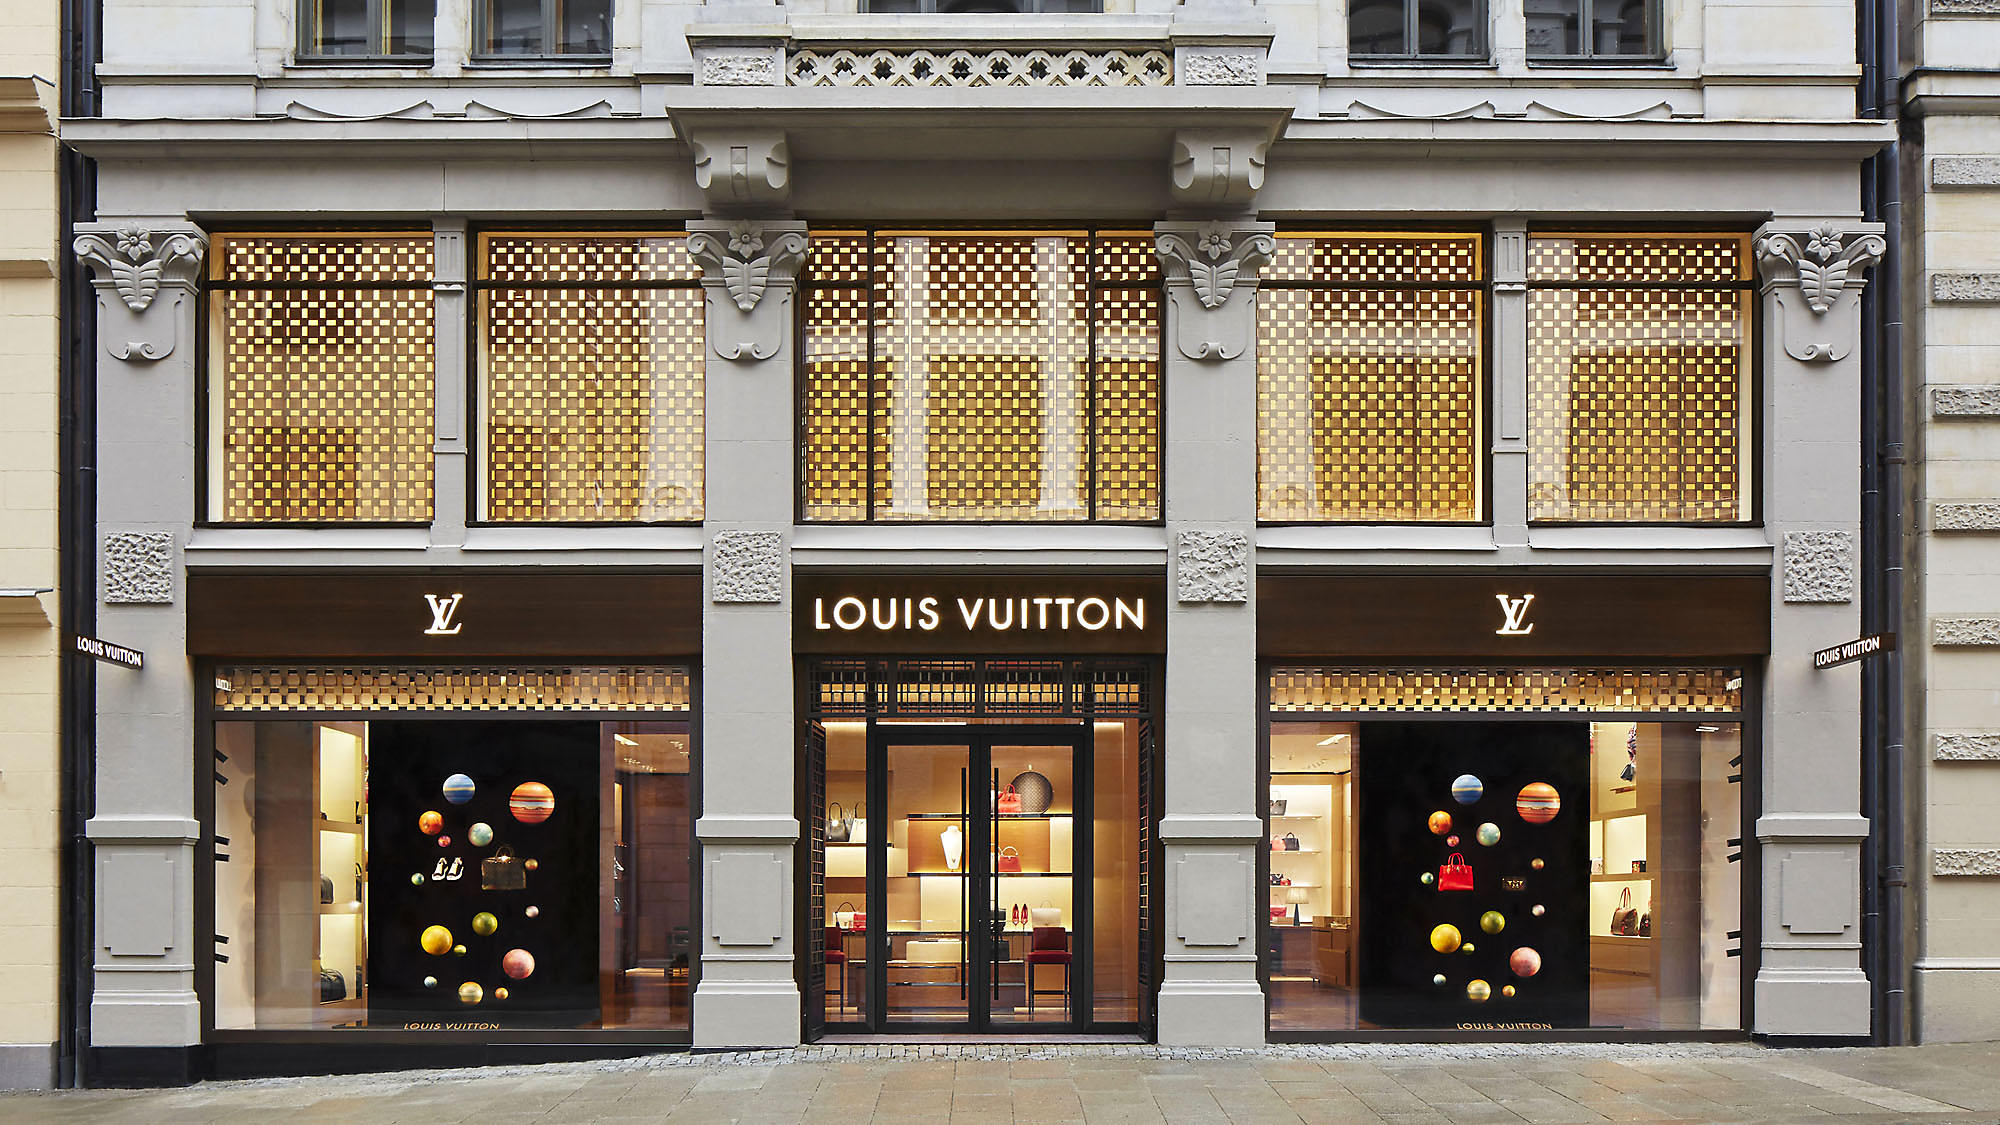 Image from louisvuitton.com